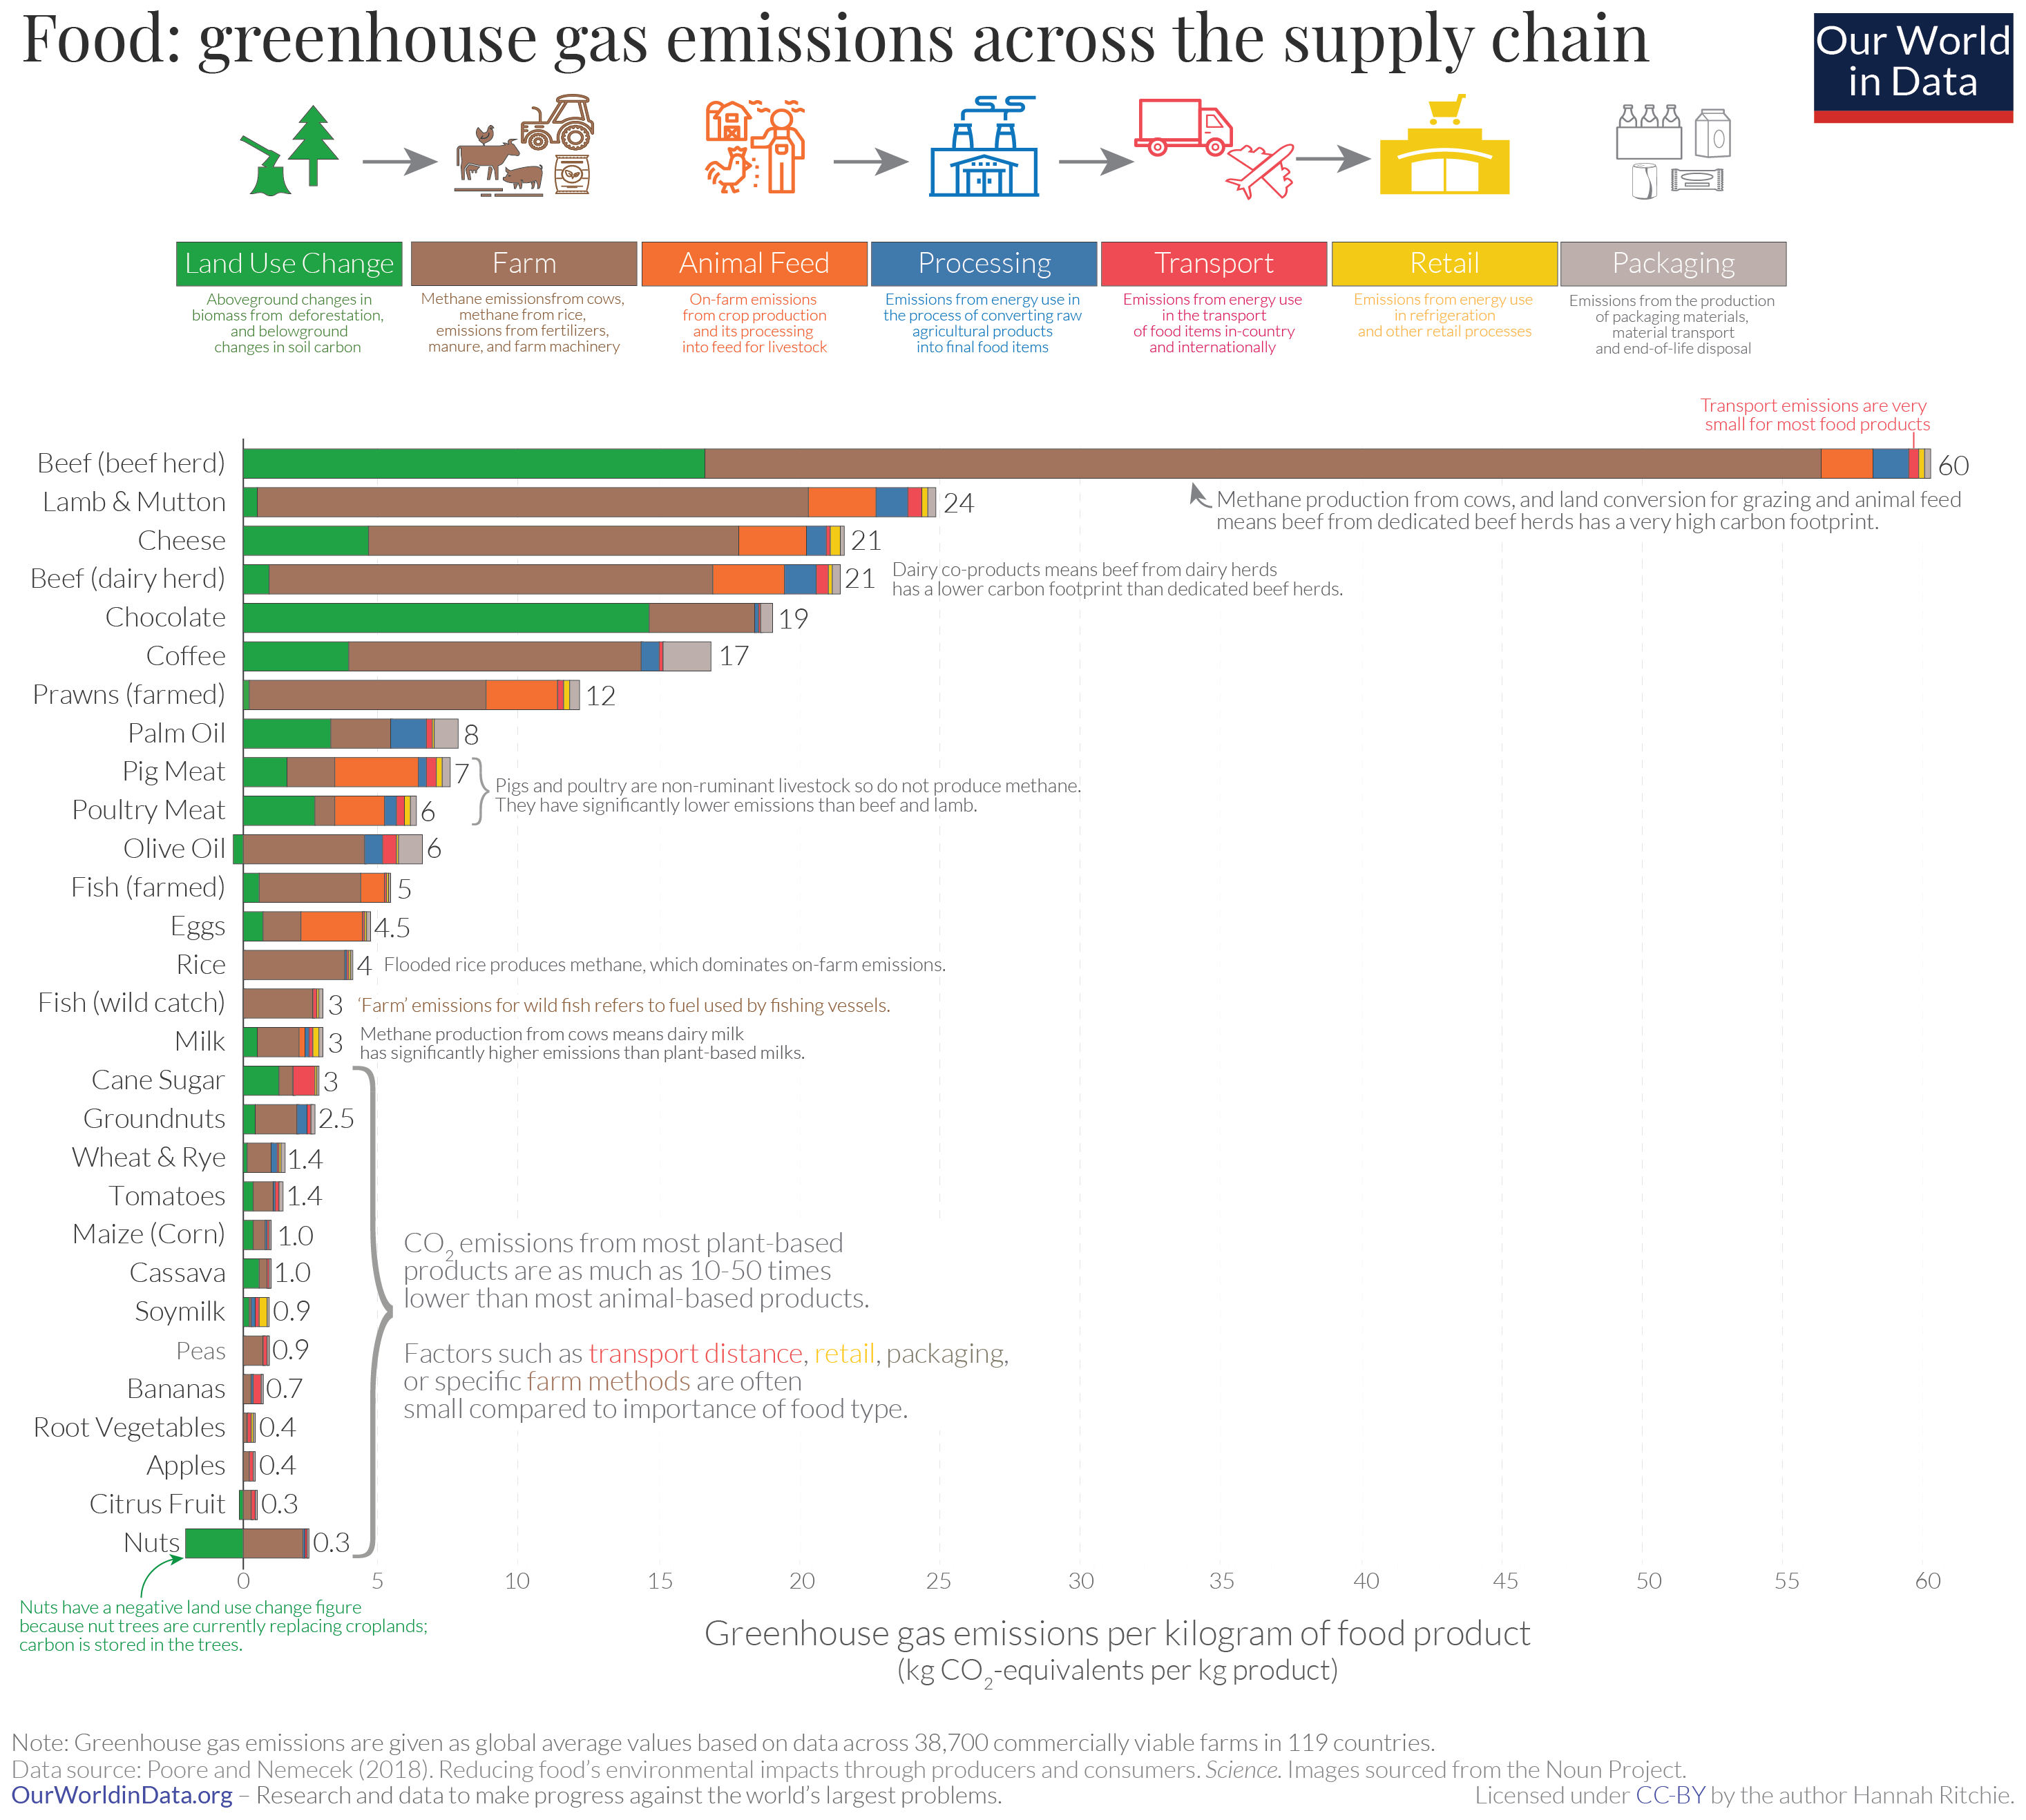 Most emissions come from land use change and farming practice. Source: Our World in Data